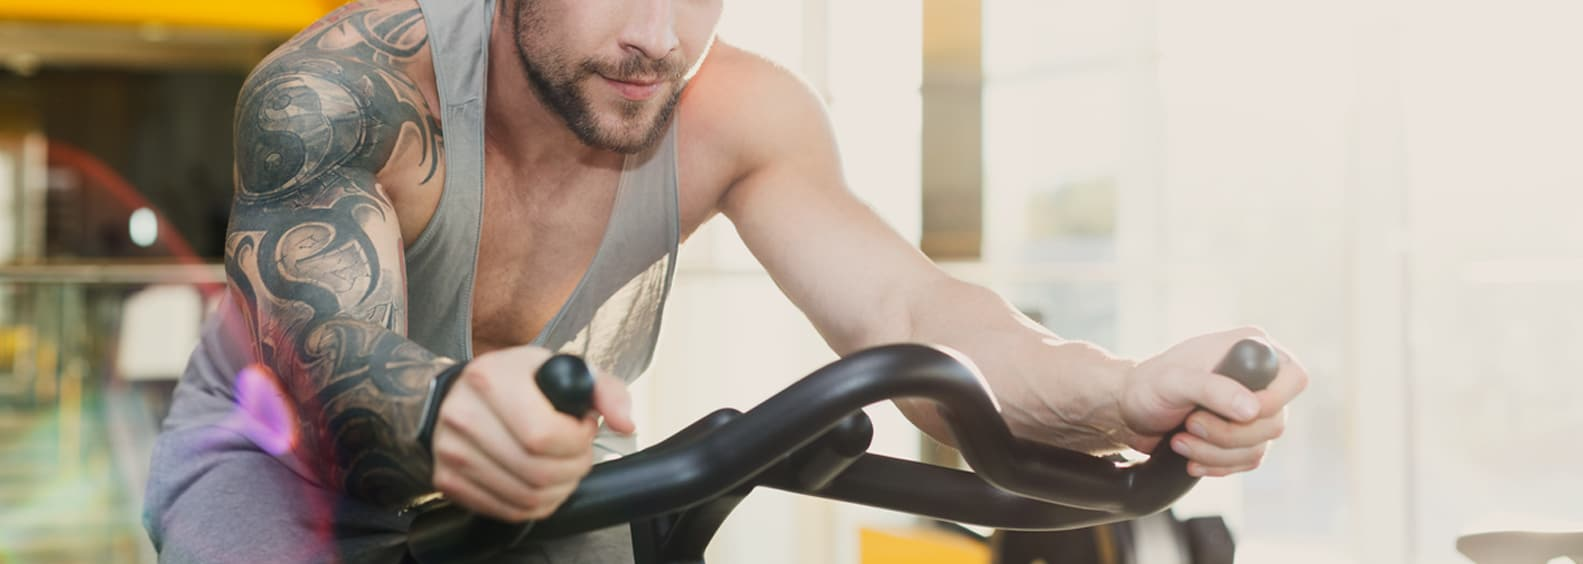 High Calorie Fat Burning Workouts